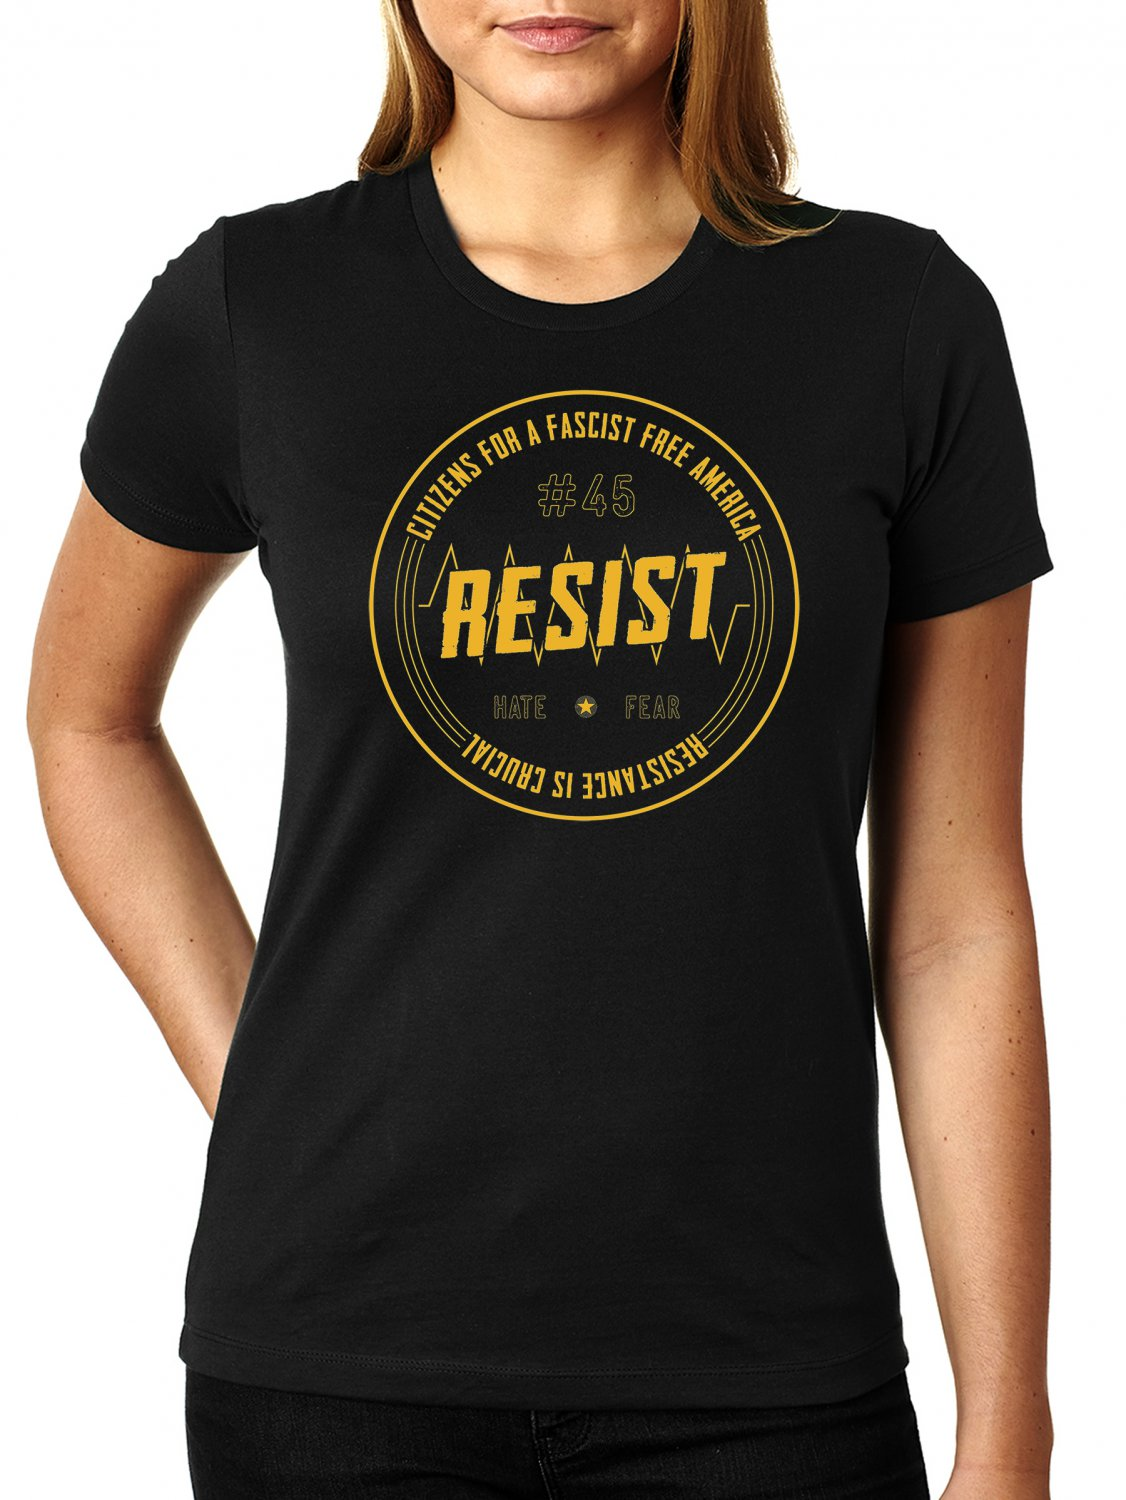 Citizens For A Fascist Free America- RESISTANCE IS CRUCIAL Cheeto Orange Ink - Women's SIZE L